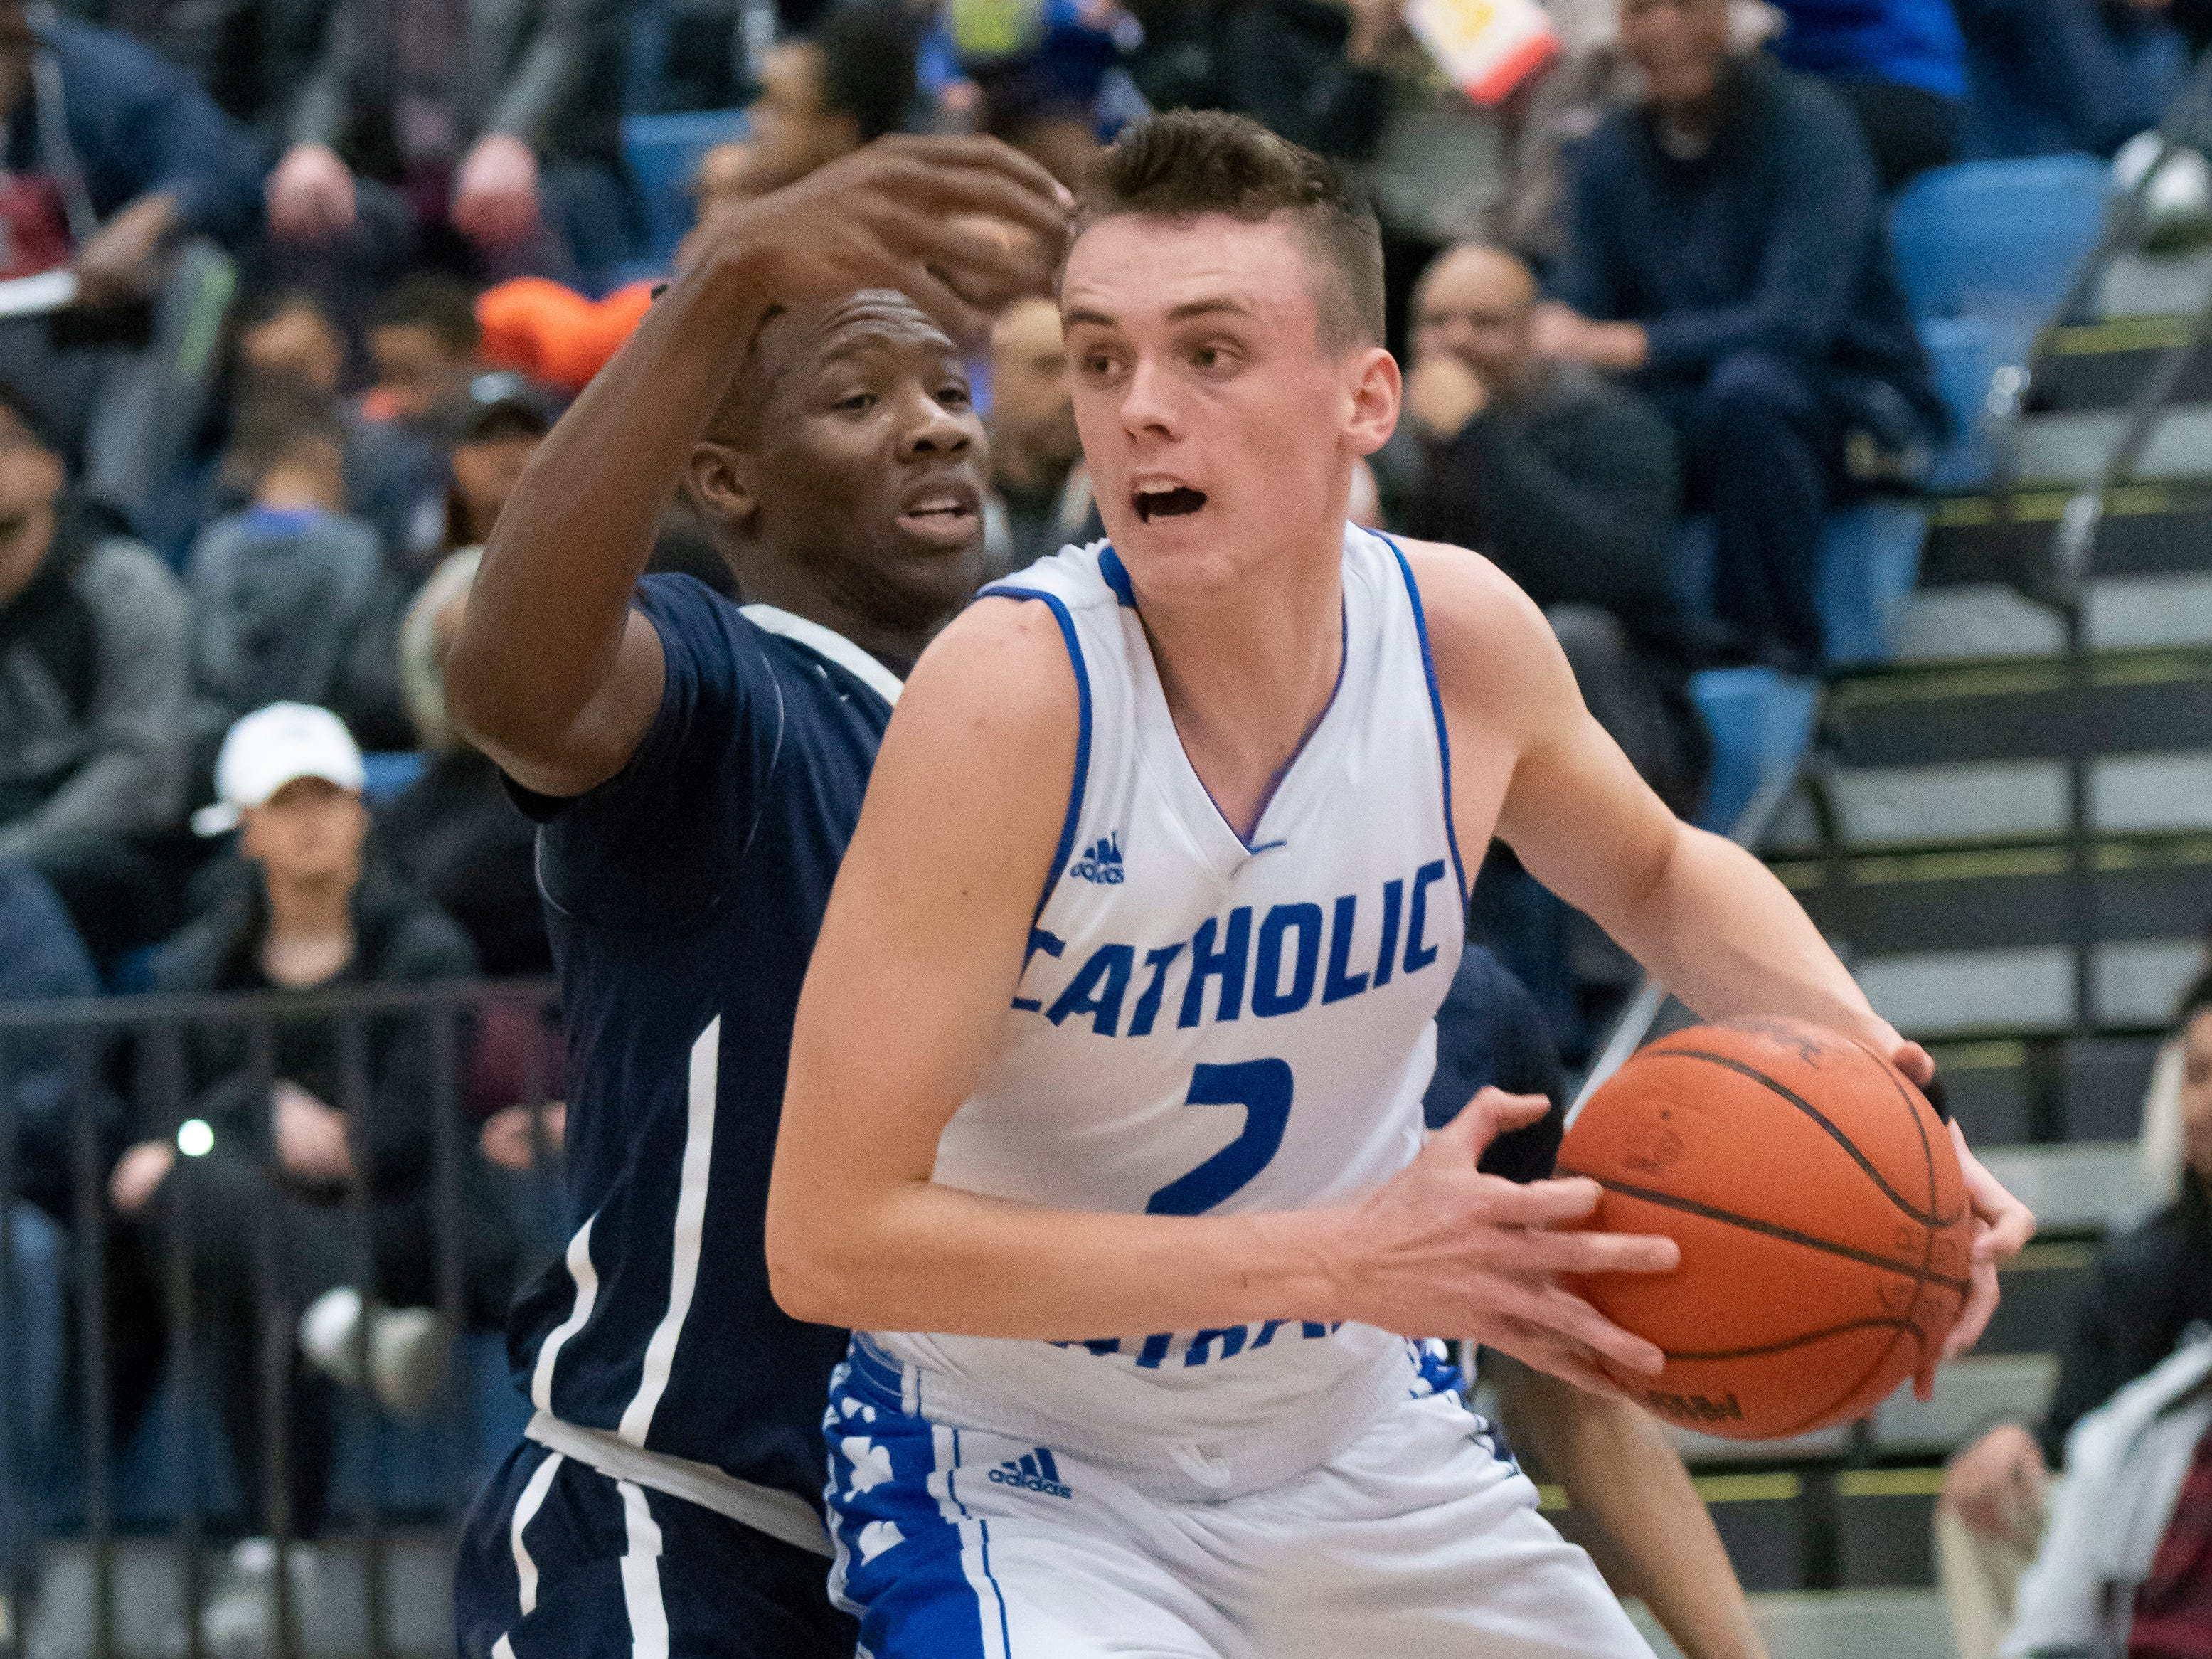 Detroit Catholic Central's Brendan Downs keeps the ball away from Wayne Memorial guard Chris Dobessi-Tindane in the first half.